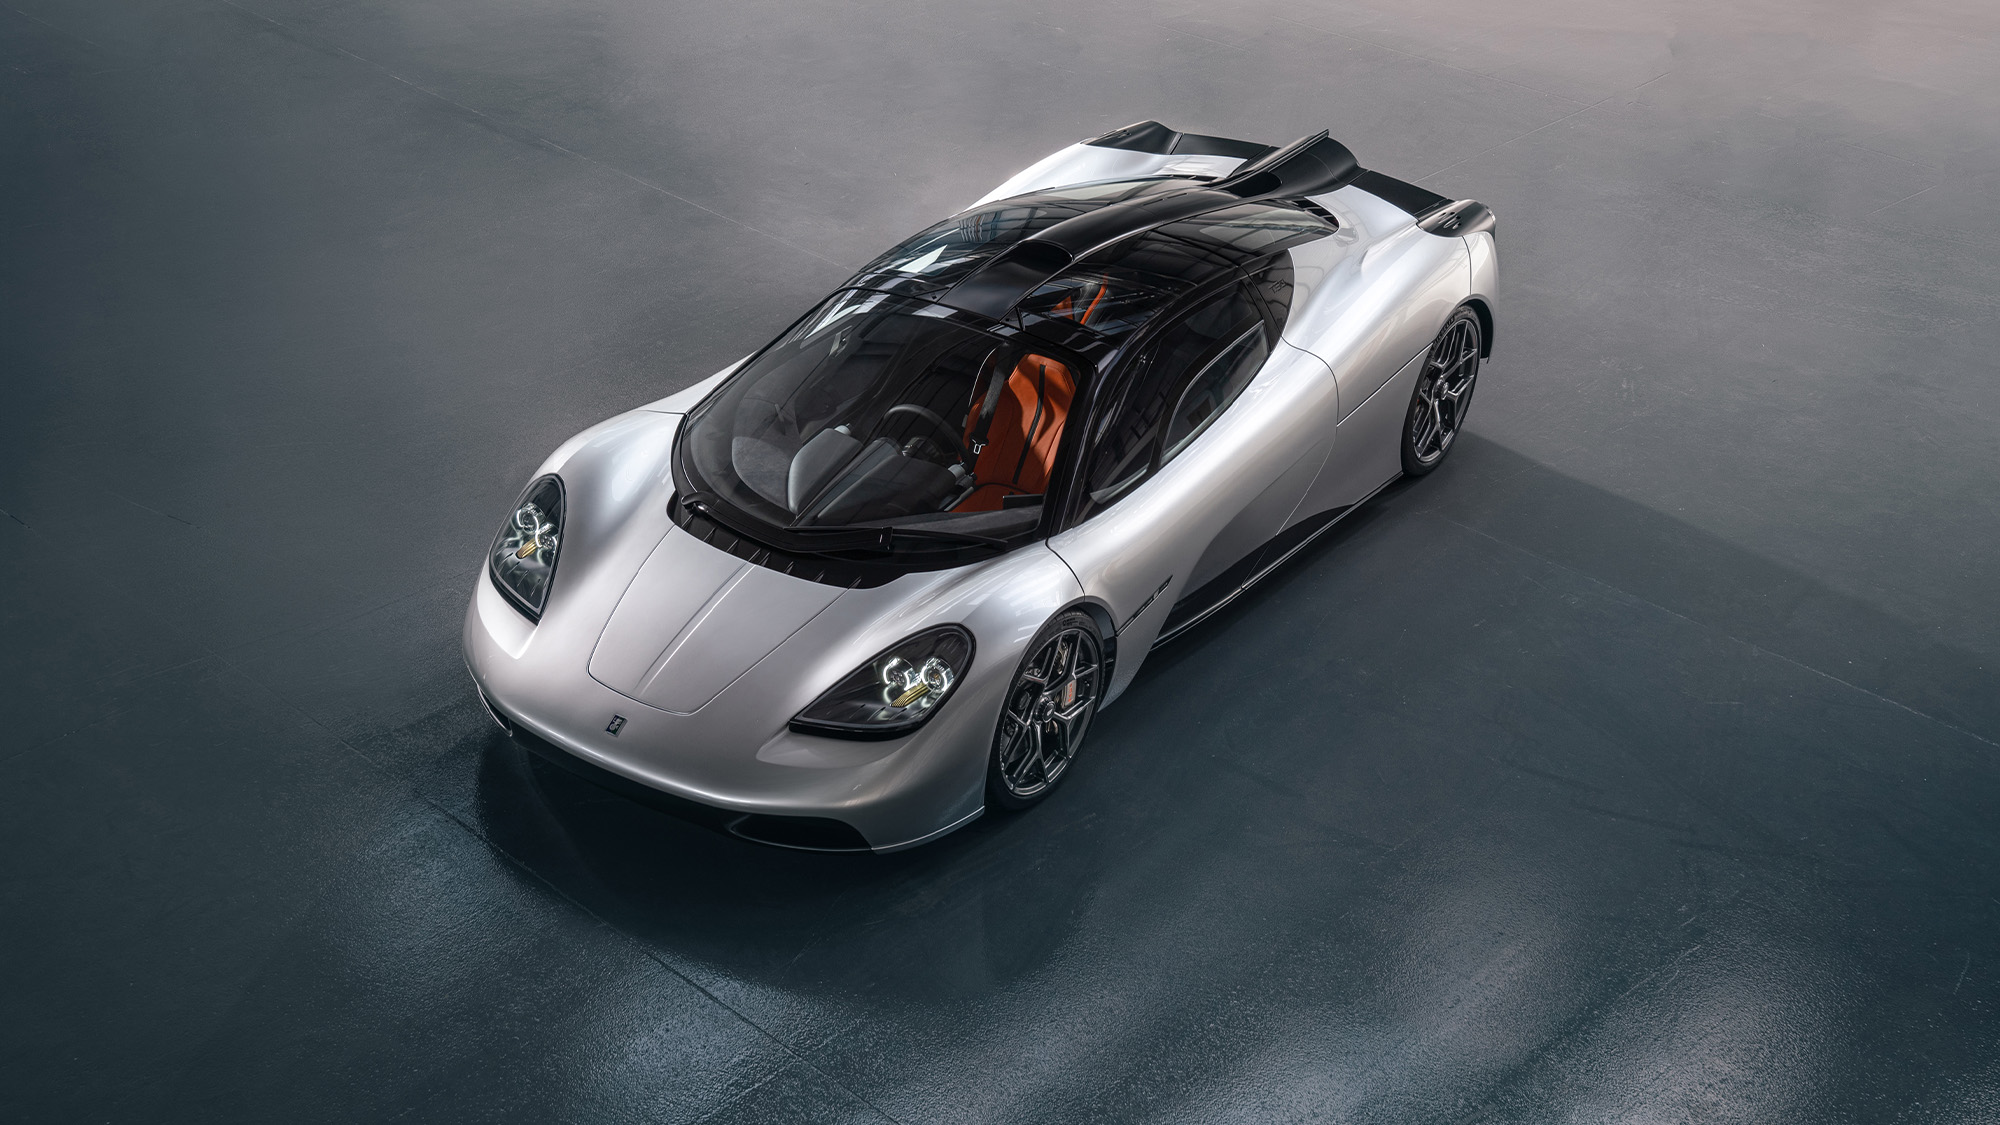 Gordon Murray T50 front overhead view